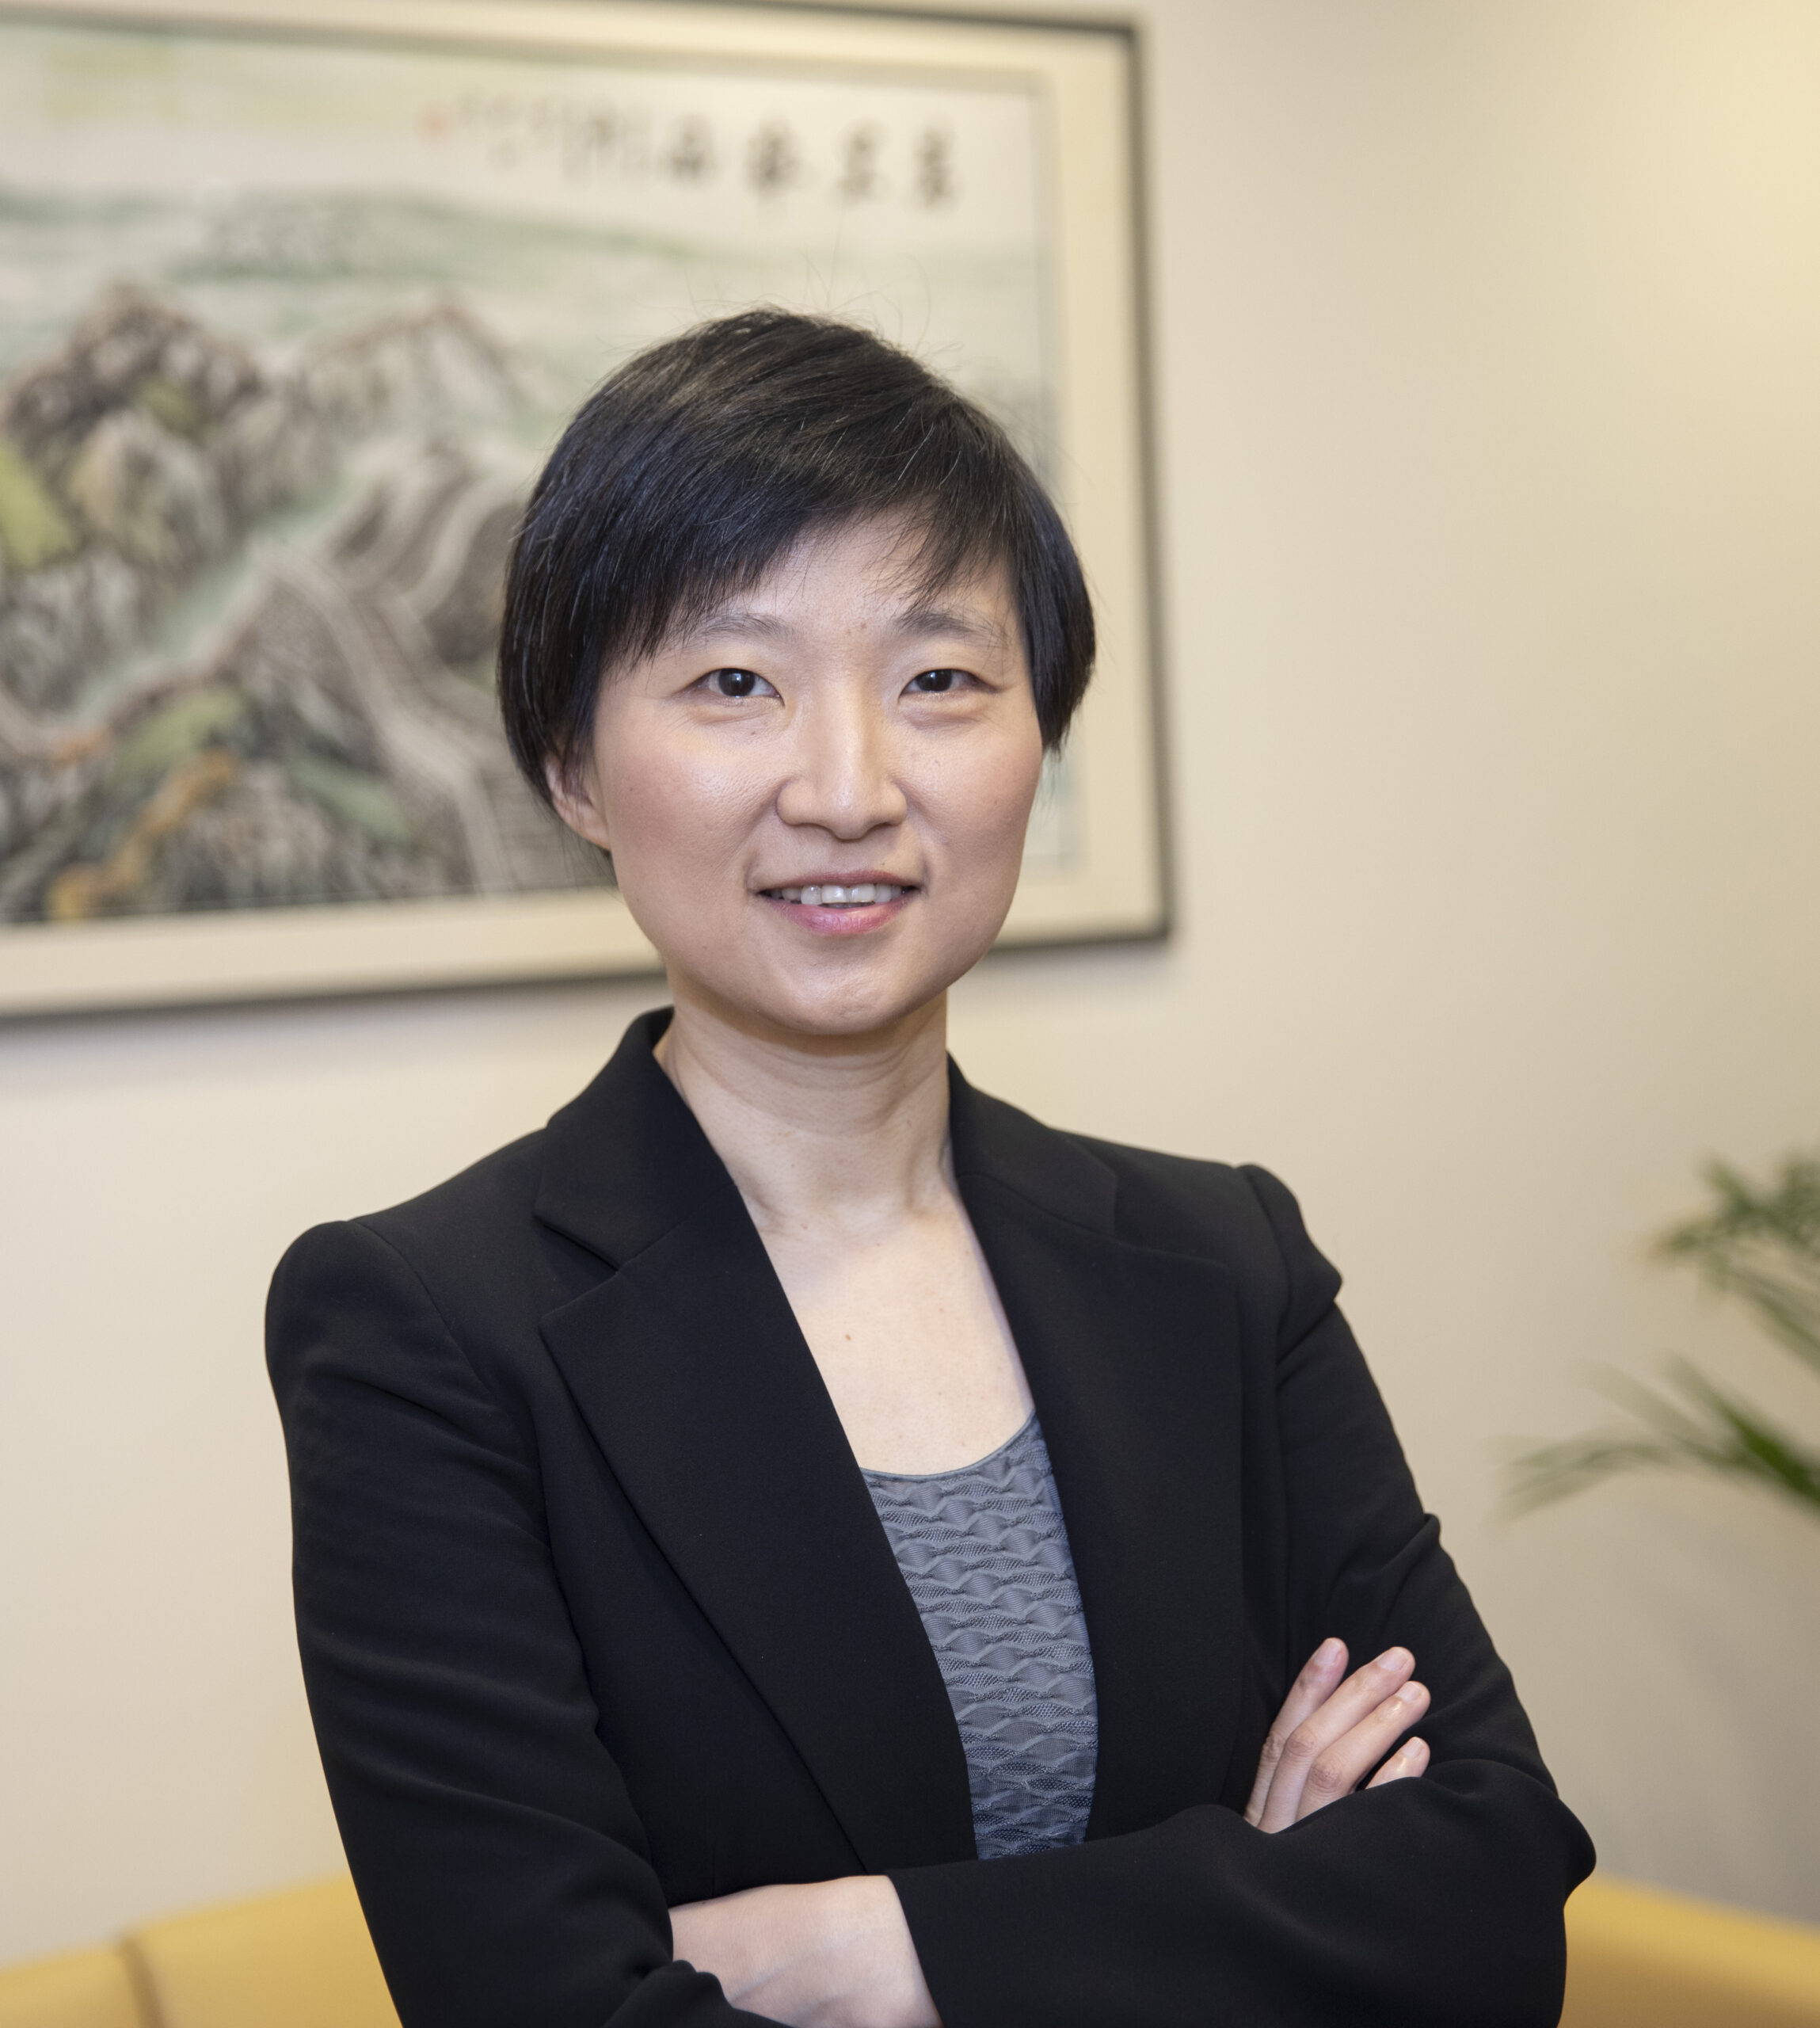 Xiaowei Zhuang researches to understand the mechanisms of cellular function and their dysfunction in disease which requires a detailed picture of the molecular interactions in cells in the Naito Lab. Kris Snibbe/Harvard Staff Photographer